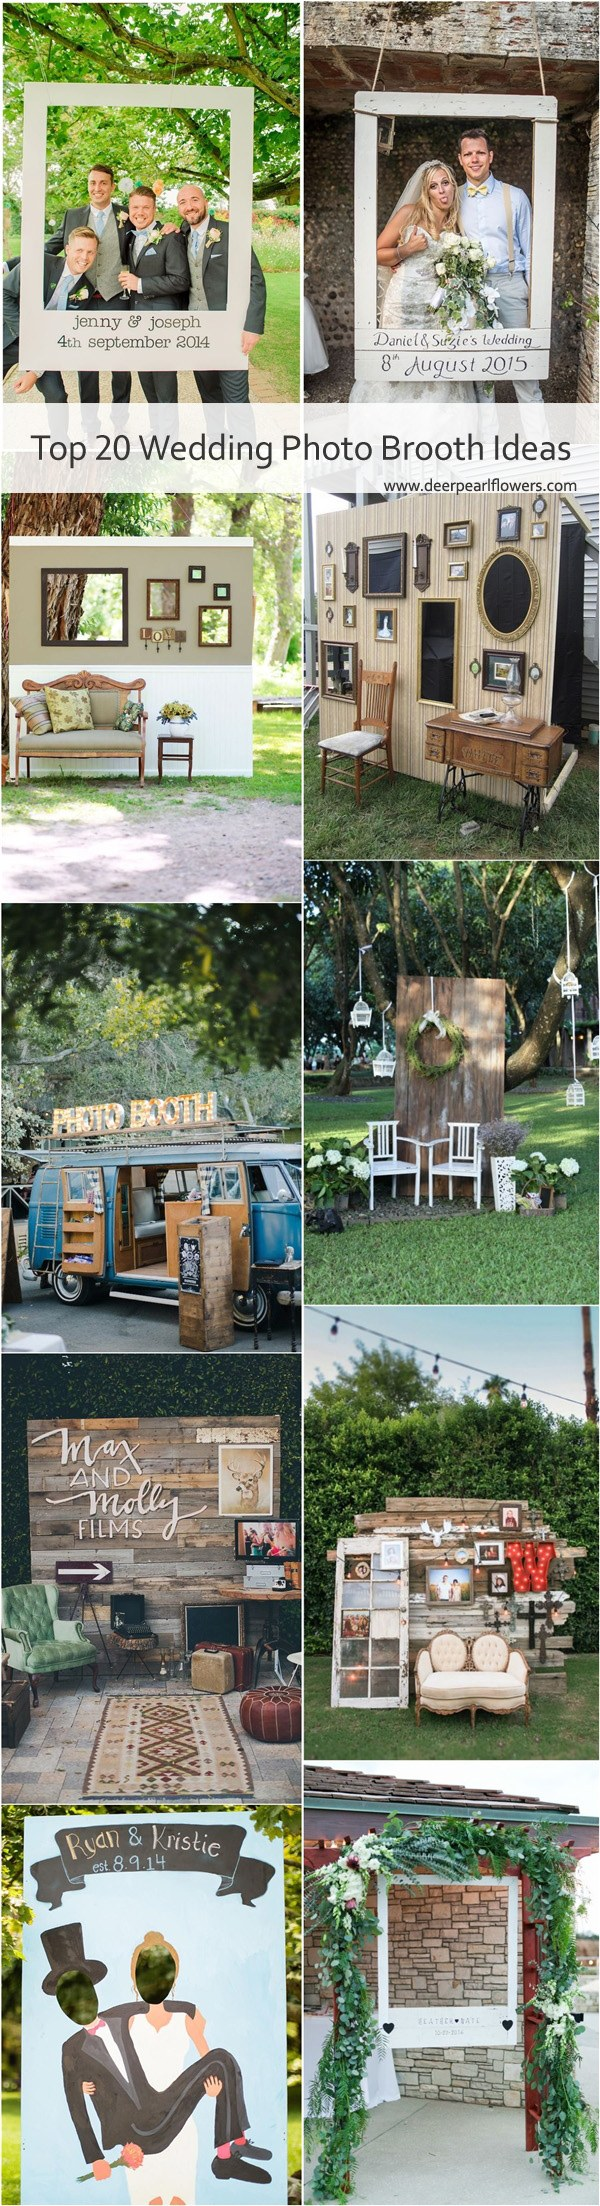 Decor Photobooth 20 Wedding Photobooth Ideas You Ll Like Deer Pearl Flowers